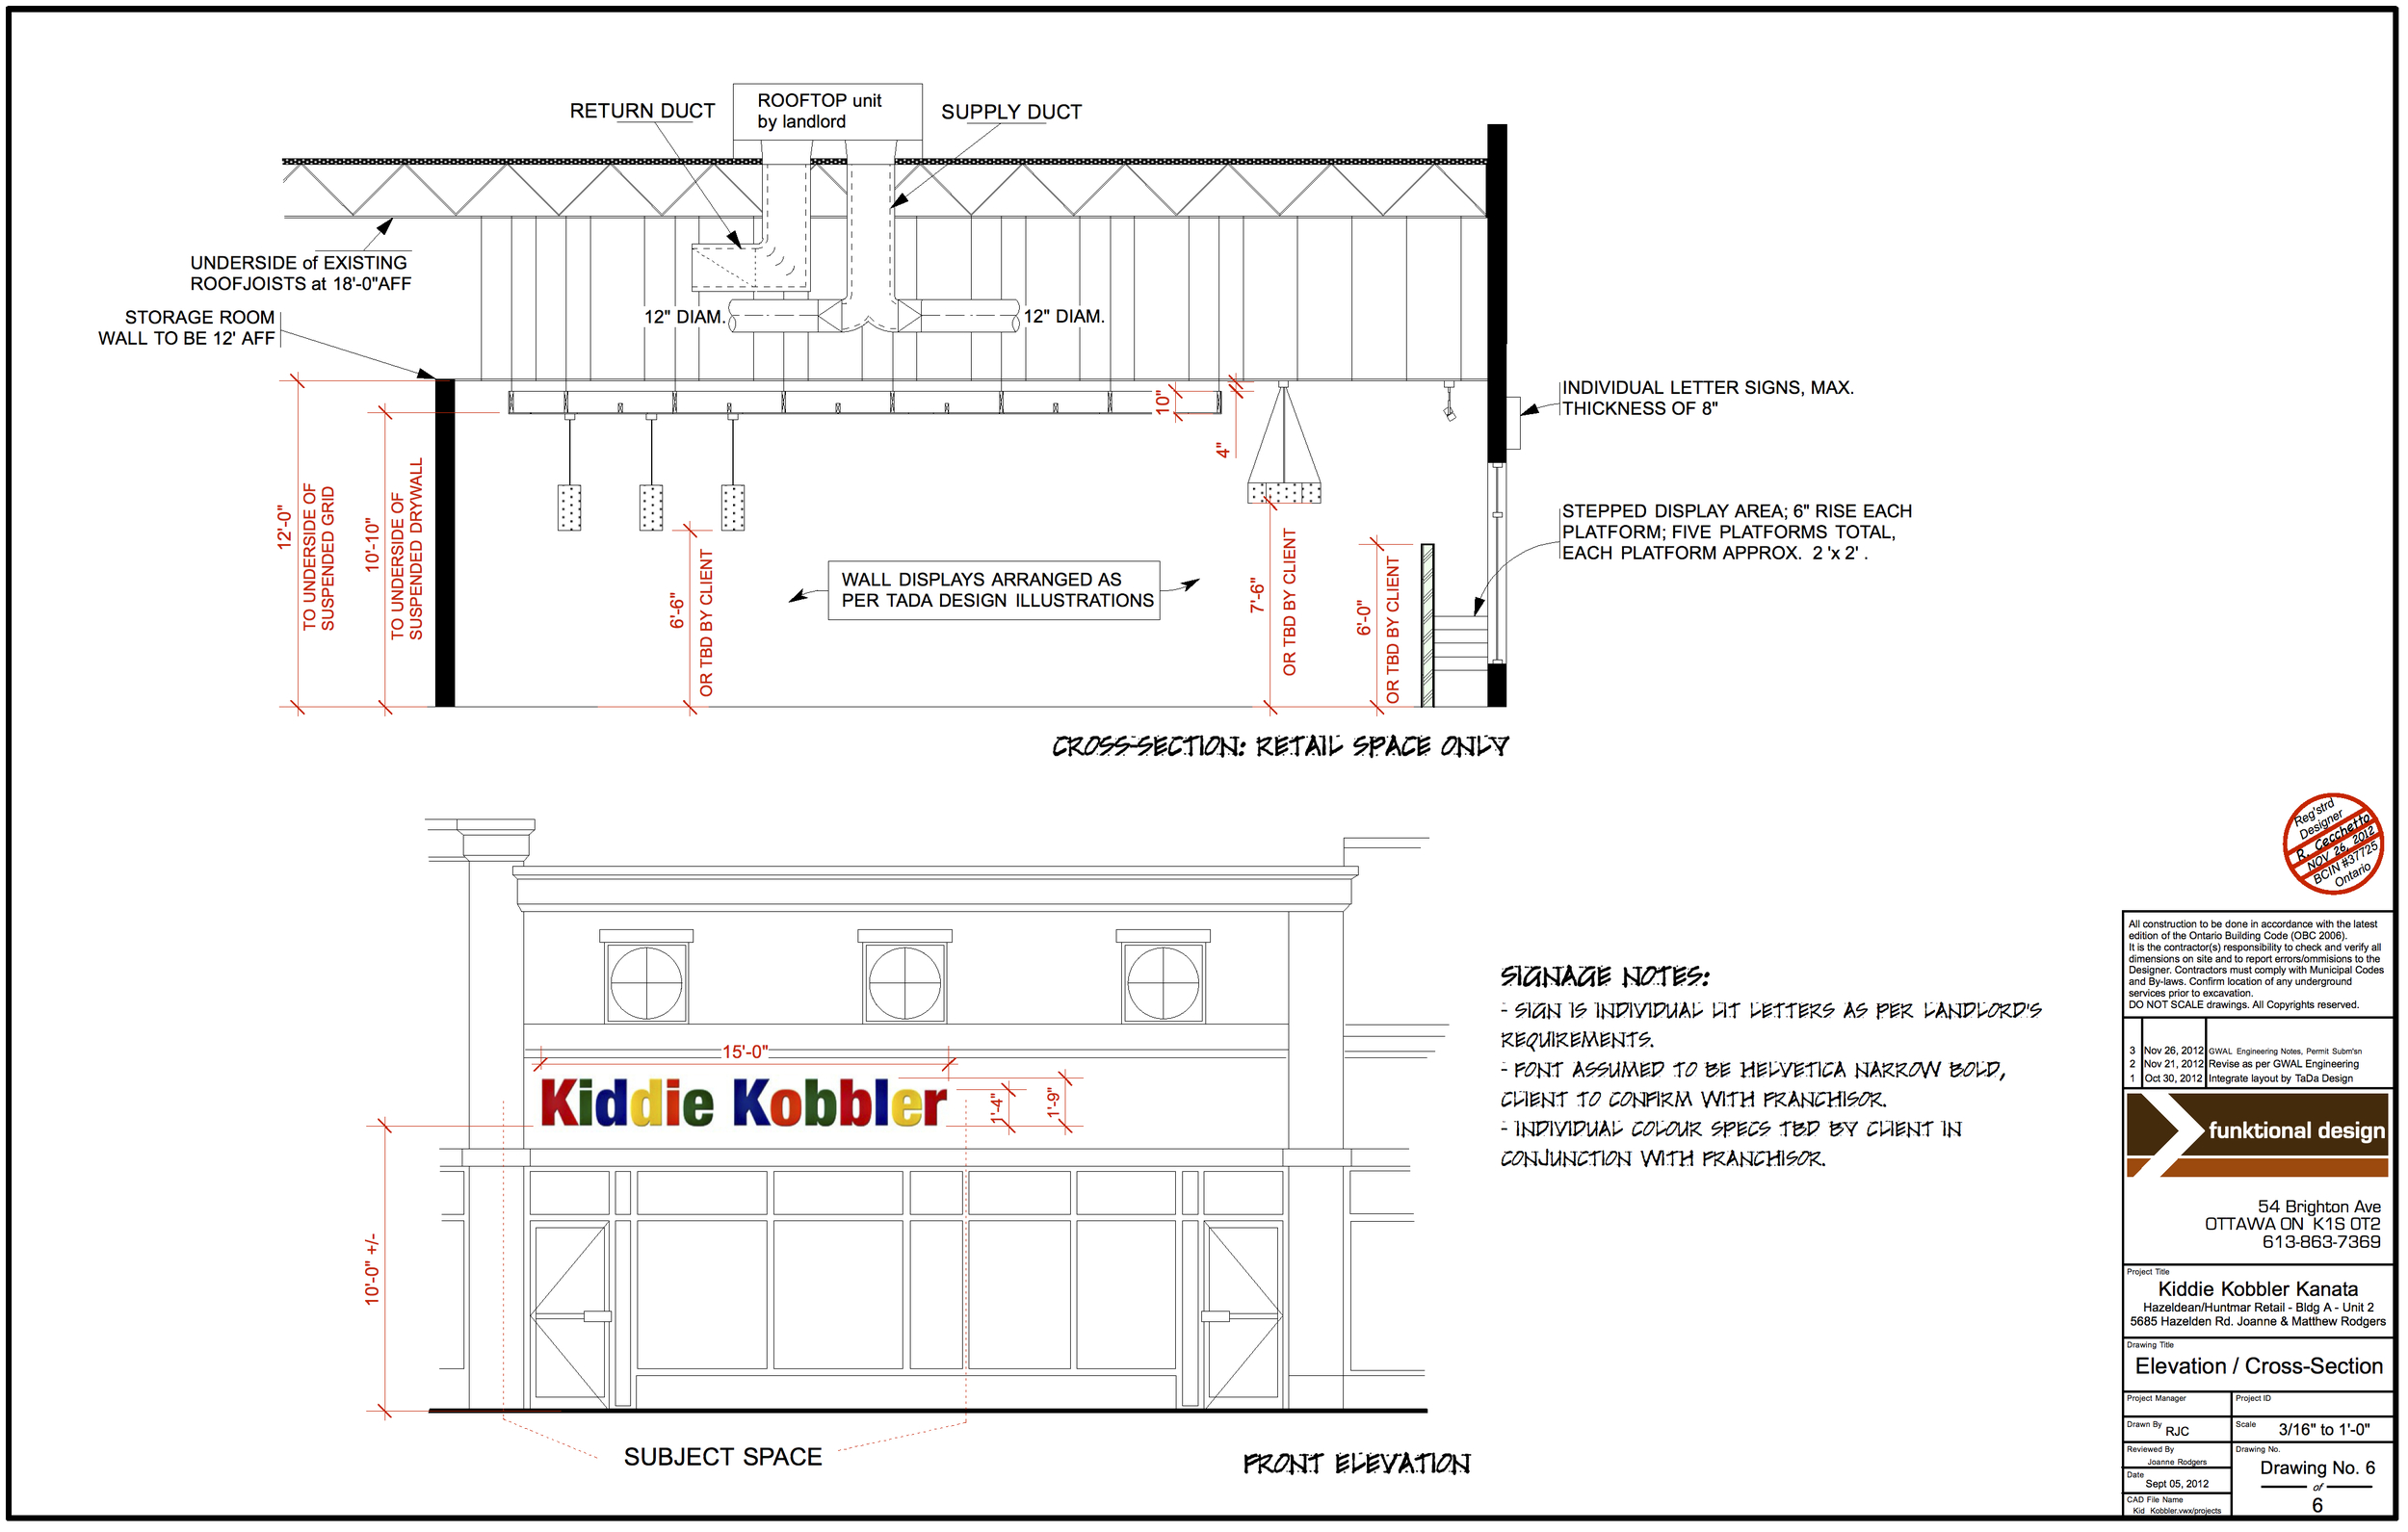 CROSS SECTION and SIGNAGE DRAWING